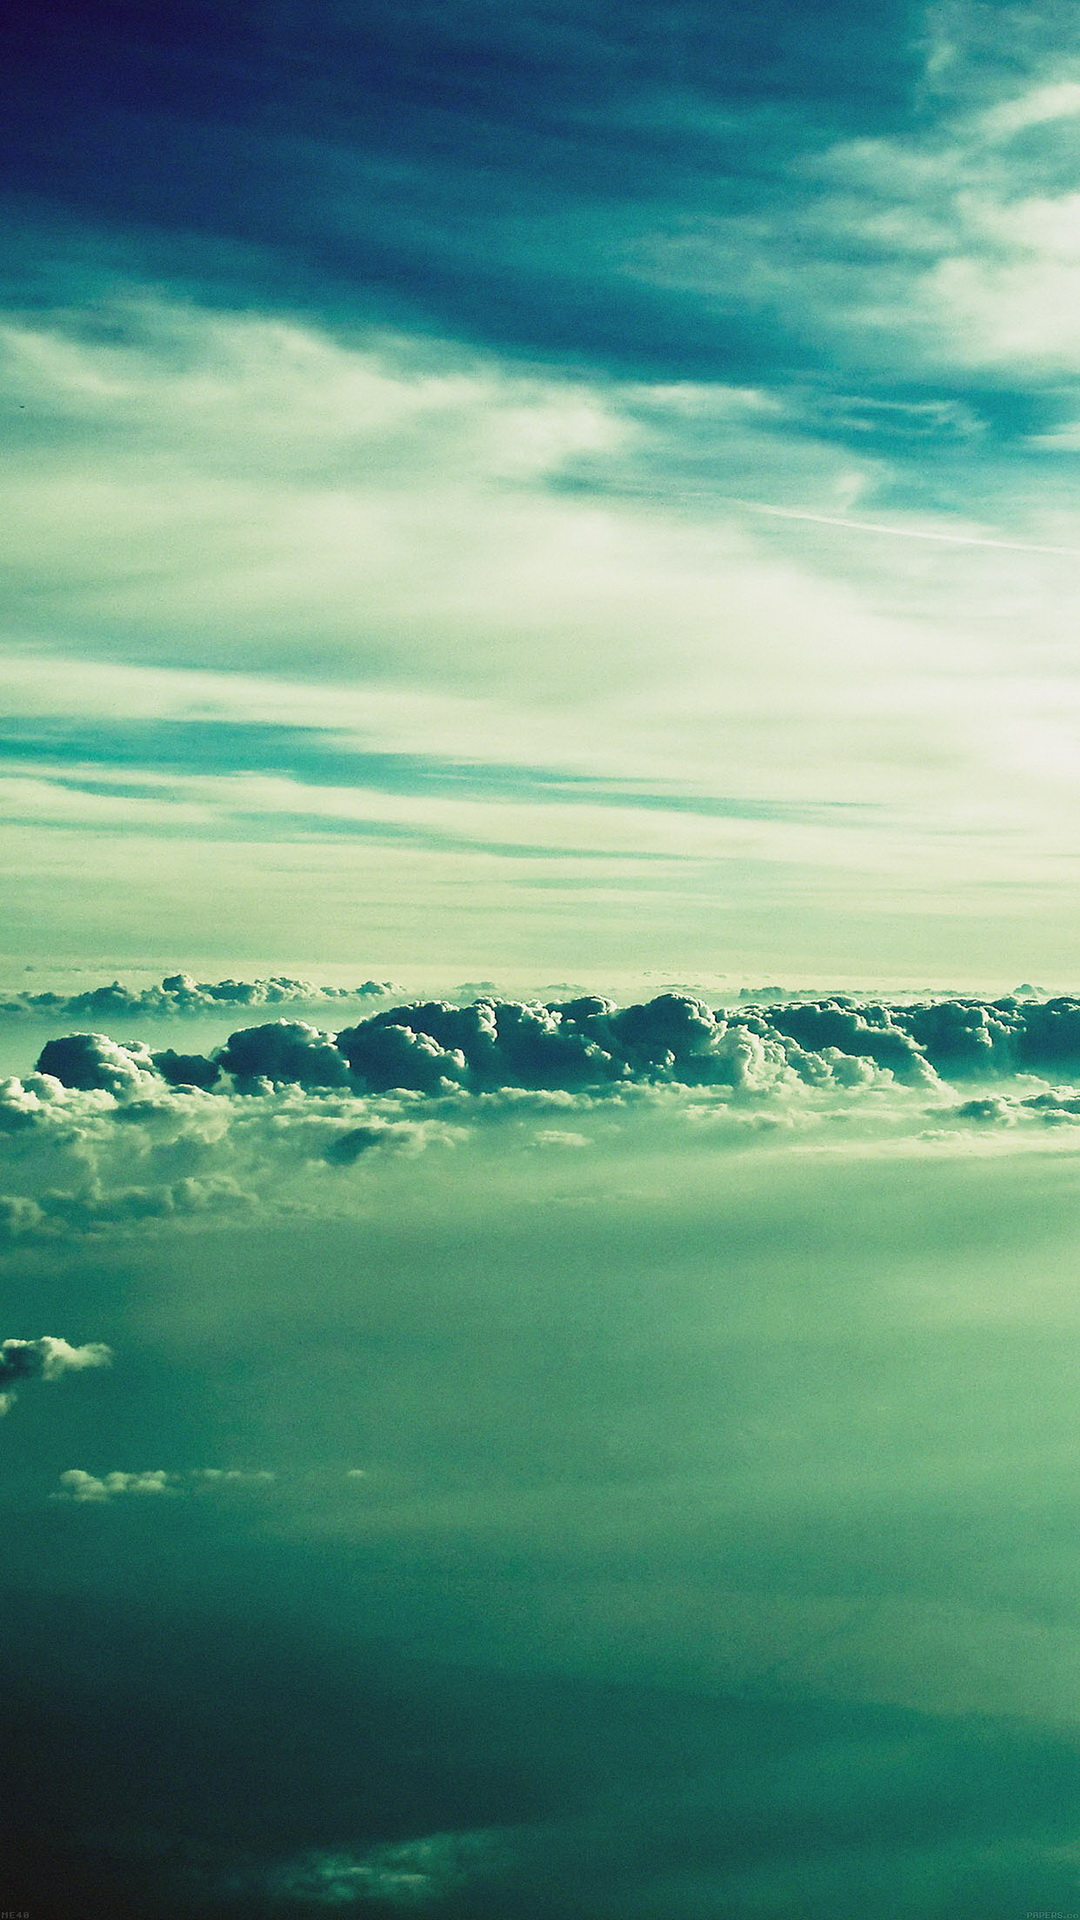 3d Wallpaper For Htc One M8 Fluffy Clouds Sky View Best Htc One Wallpapers